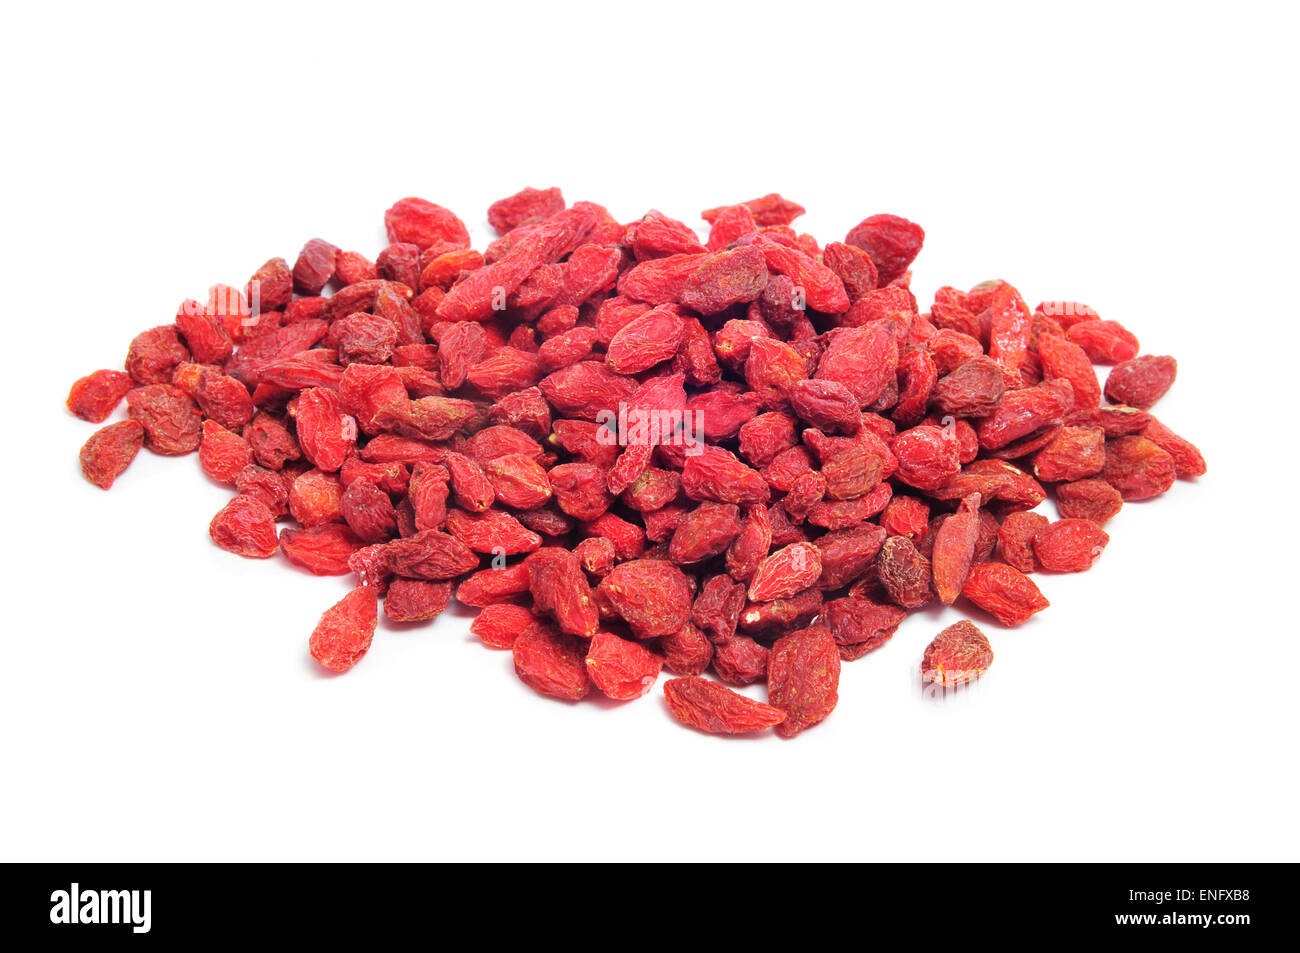 a pile of dried goji berries on a white background - Stock Image